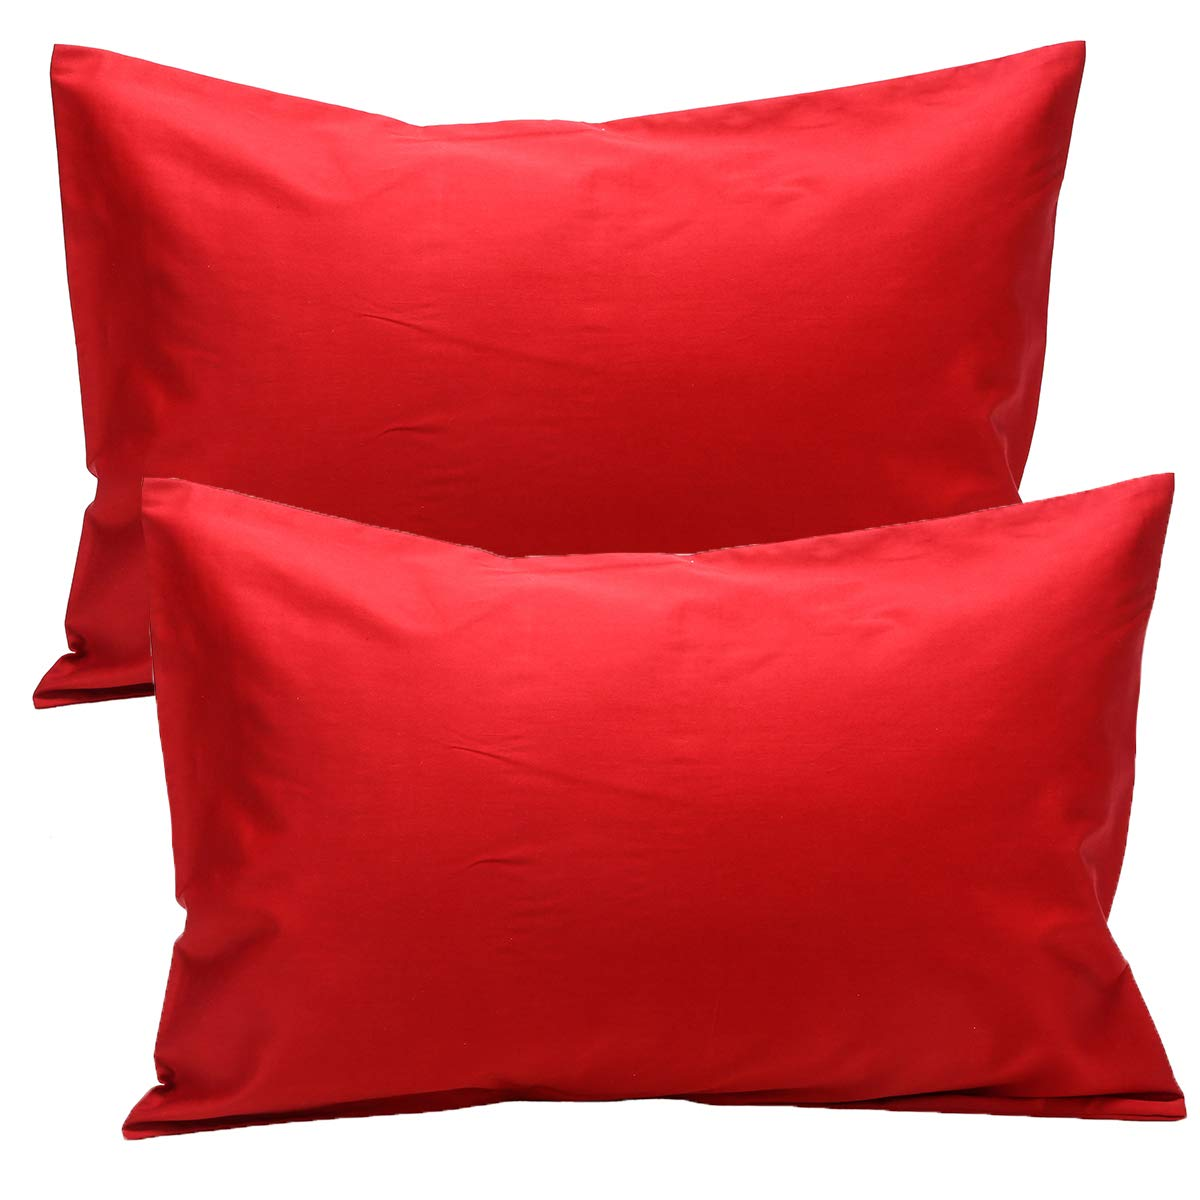 UOMNY Kid Pillowcases 2 Pack 100% Cotton Pillow Cover 14x20 Baby Pillow Cases for Sleeping Tiny Pillows case for Kids Solid Pillowcases Travel Pillowcases Jujube Red Kids' Pillowcases